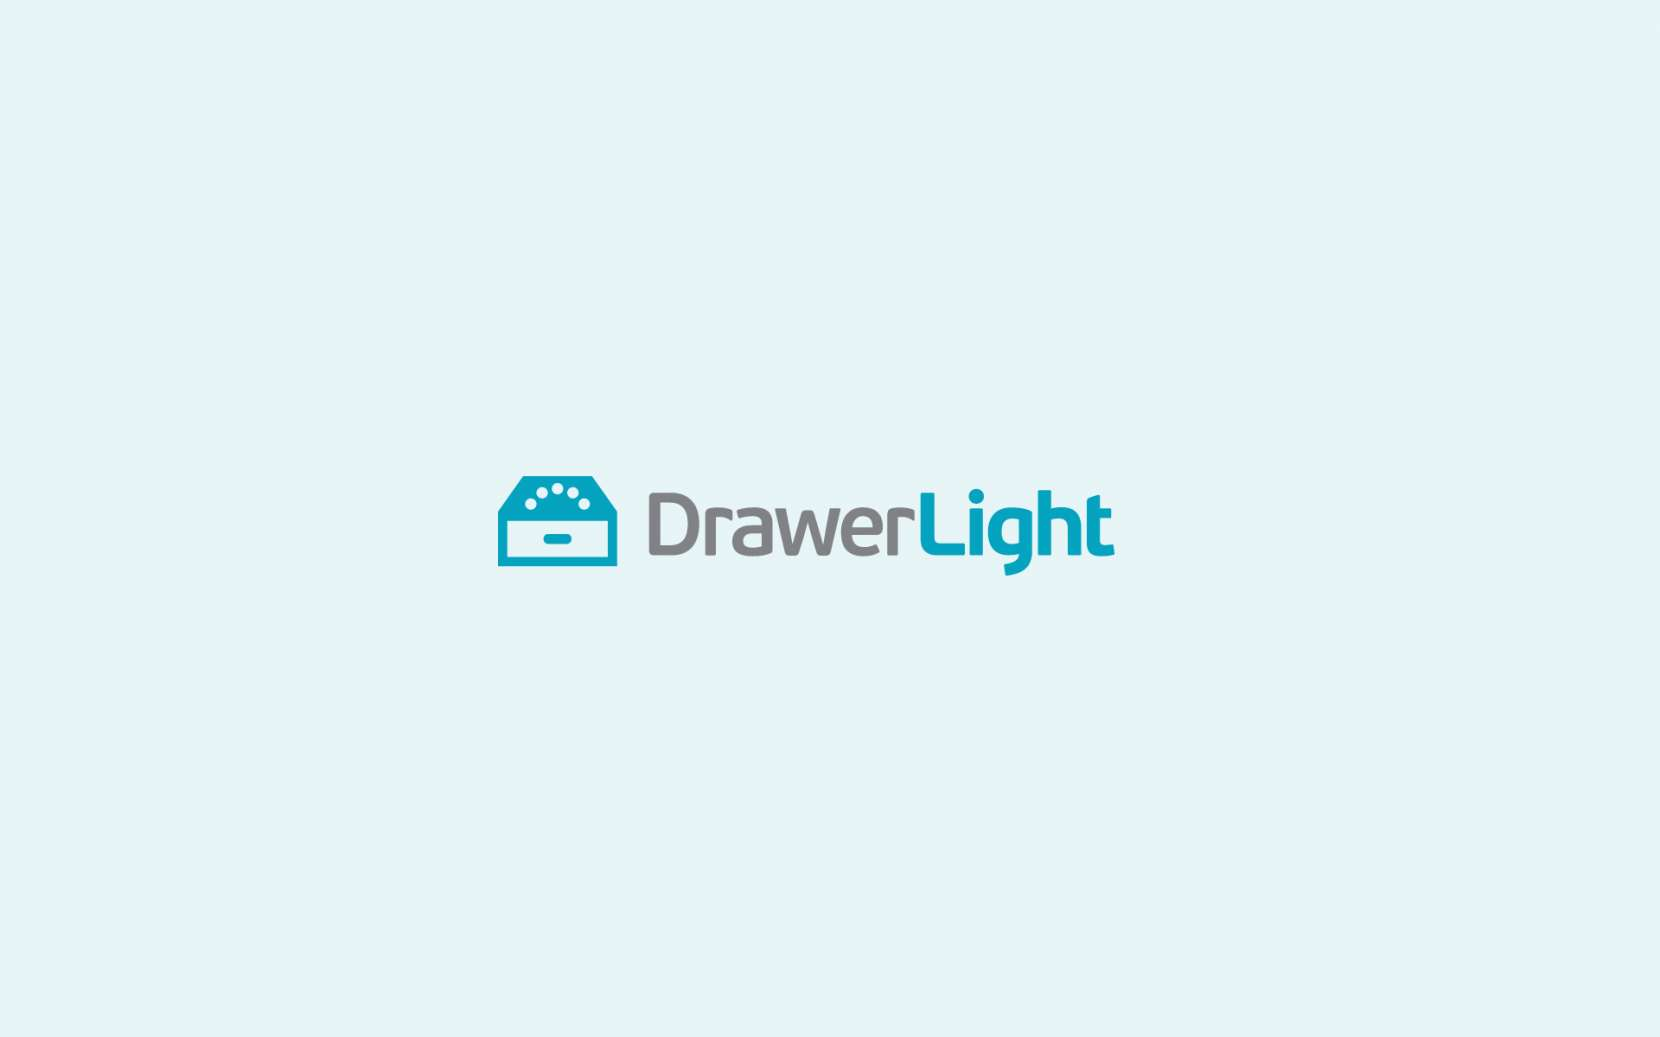 DrawerLight.jpg